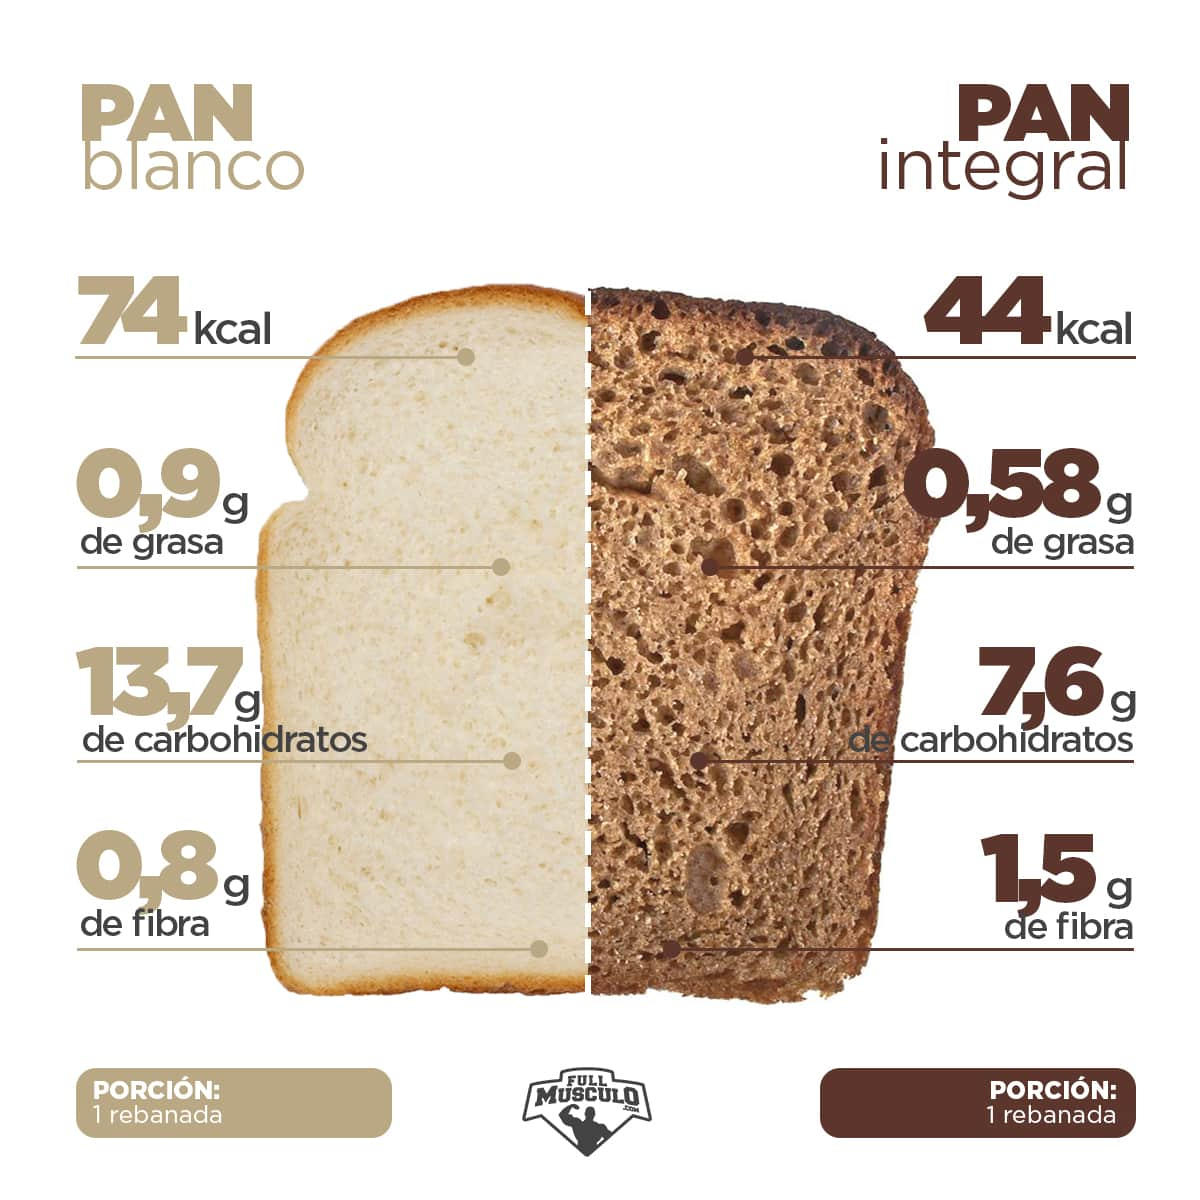 pan blanco VS pan integral